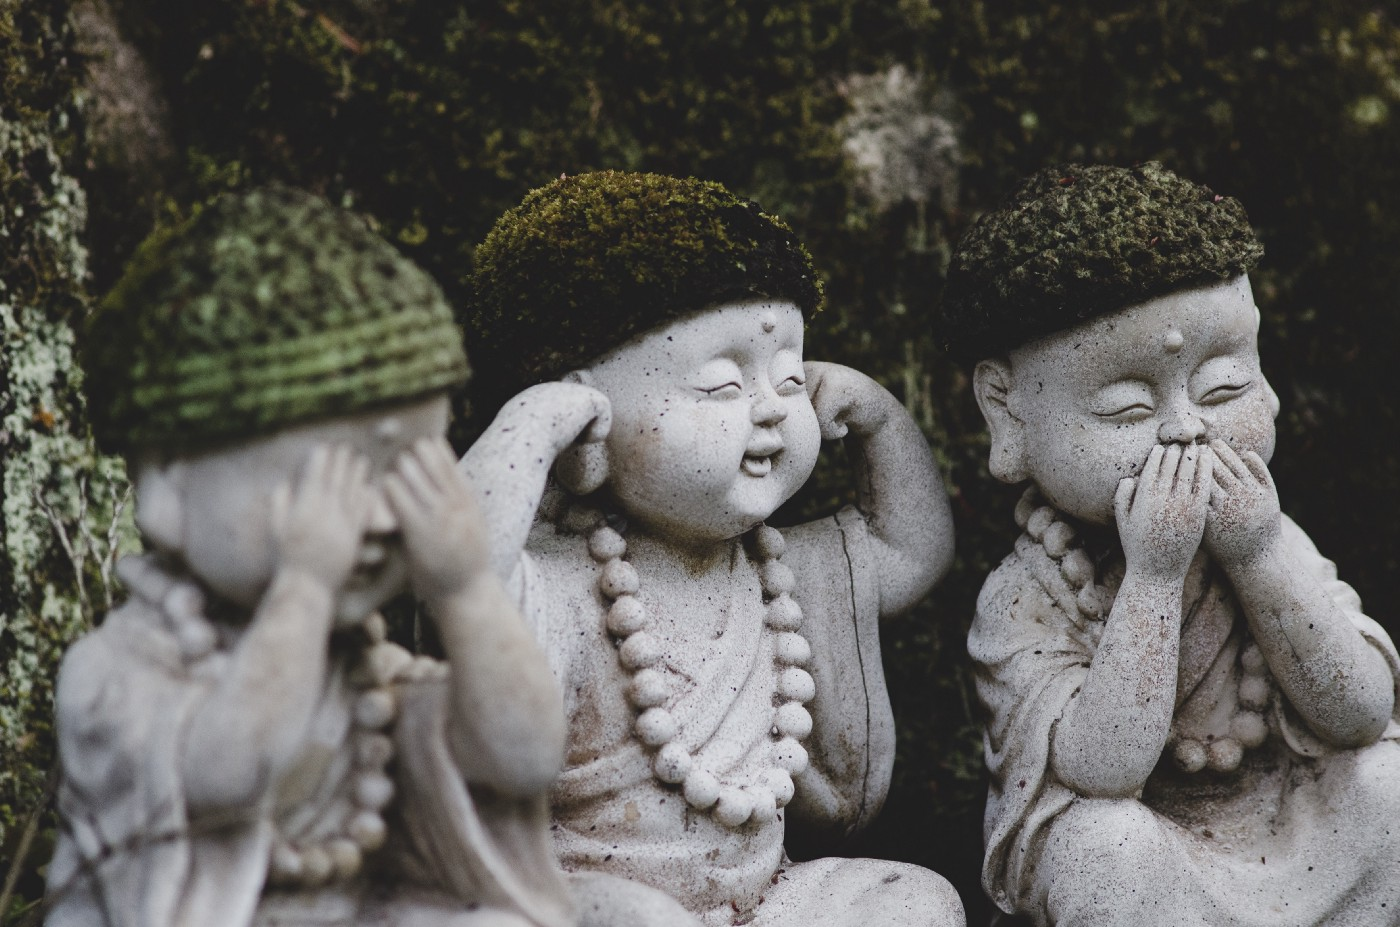 3 stone statues of Buddha-like children. One covers their eyes; one, their ears; and one, their mouth.